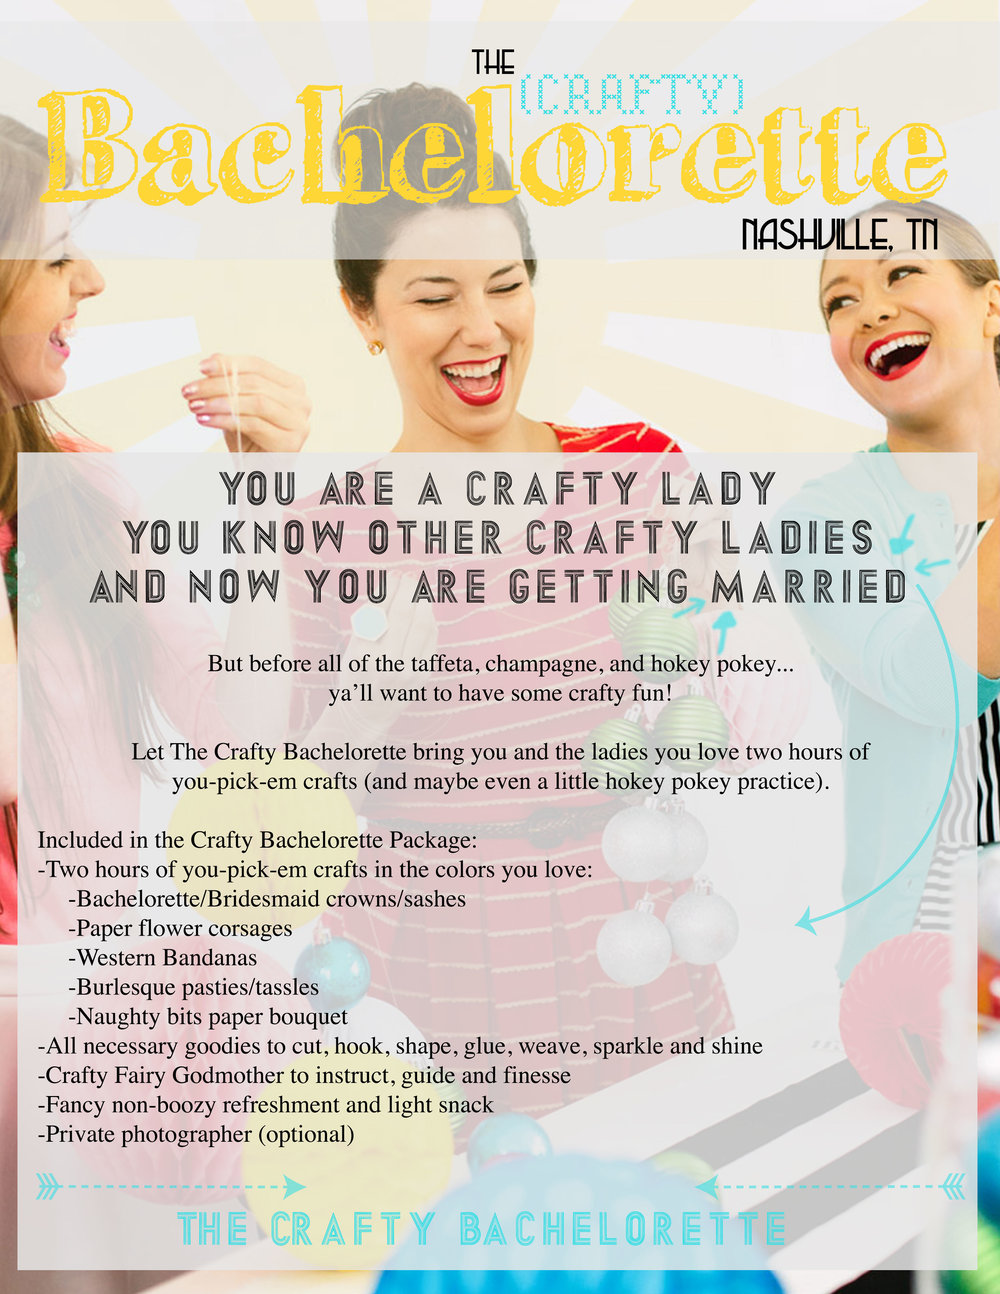 Crafty-Bachelorette.jpg